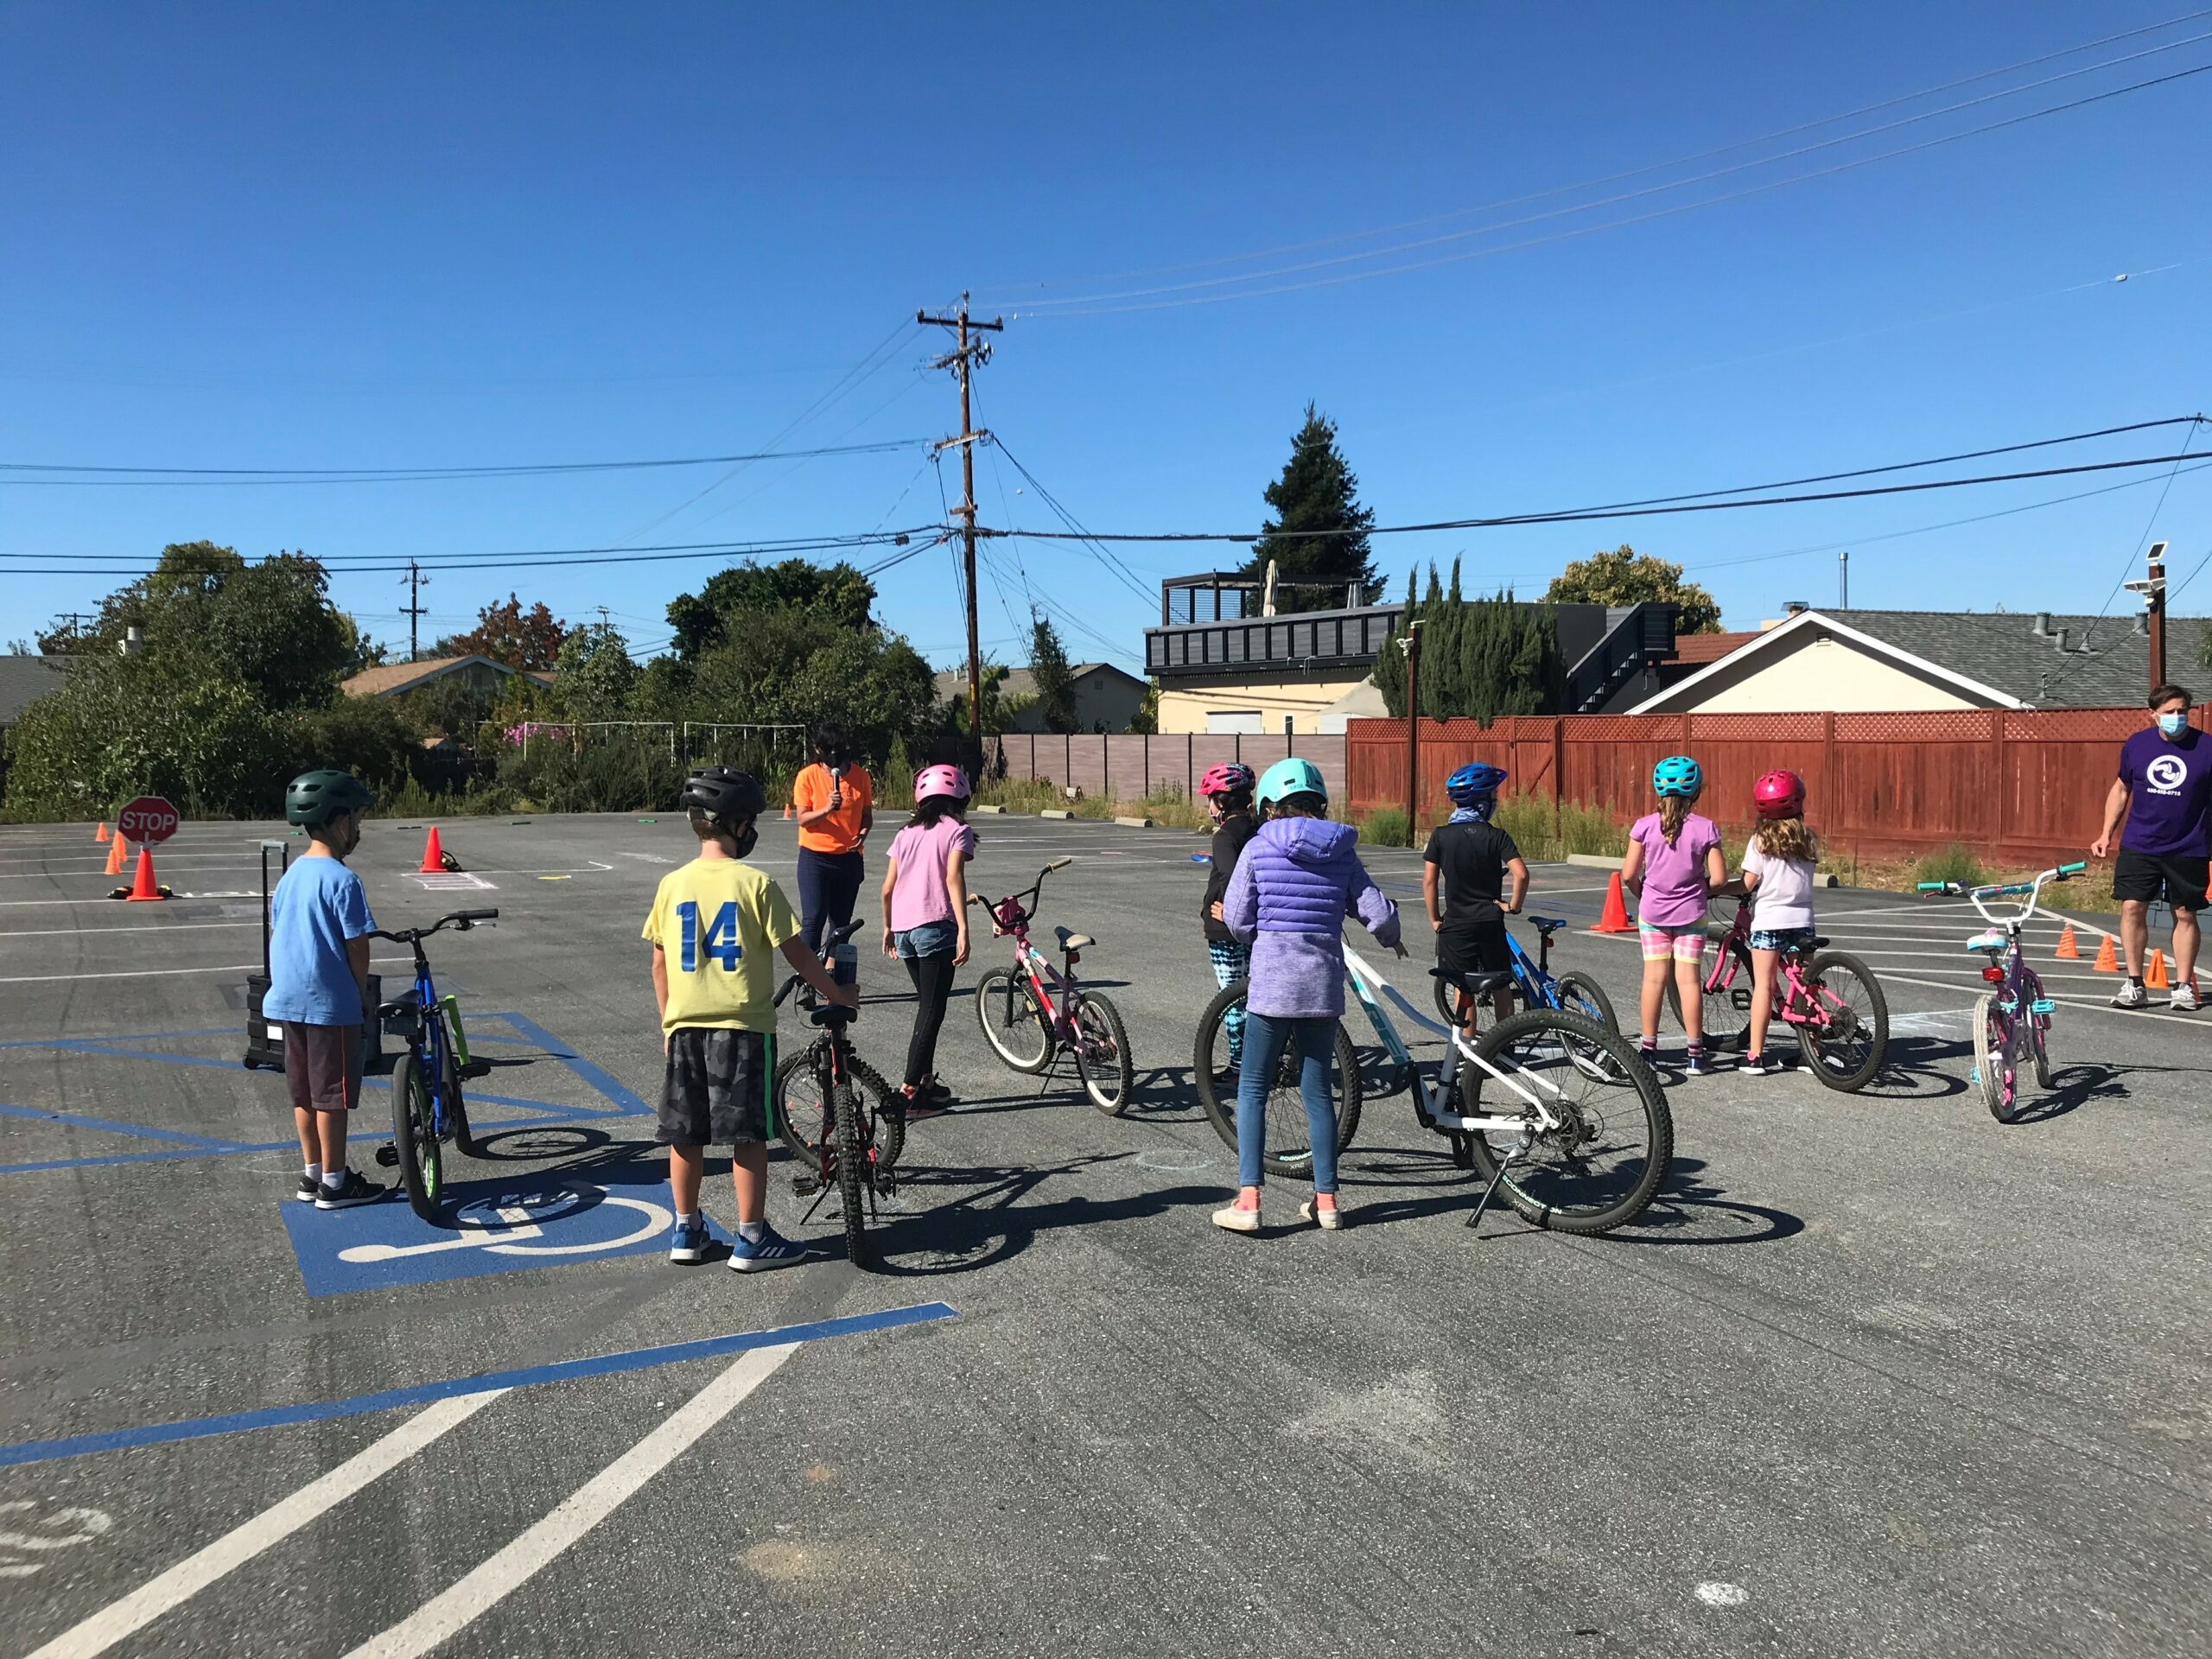 Image of kids standing in parking lot on bikes with helmets